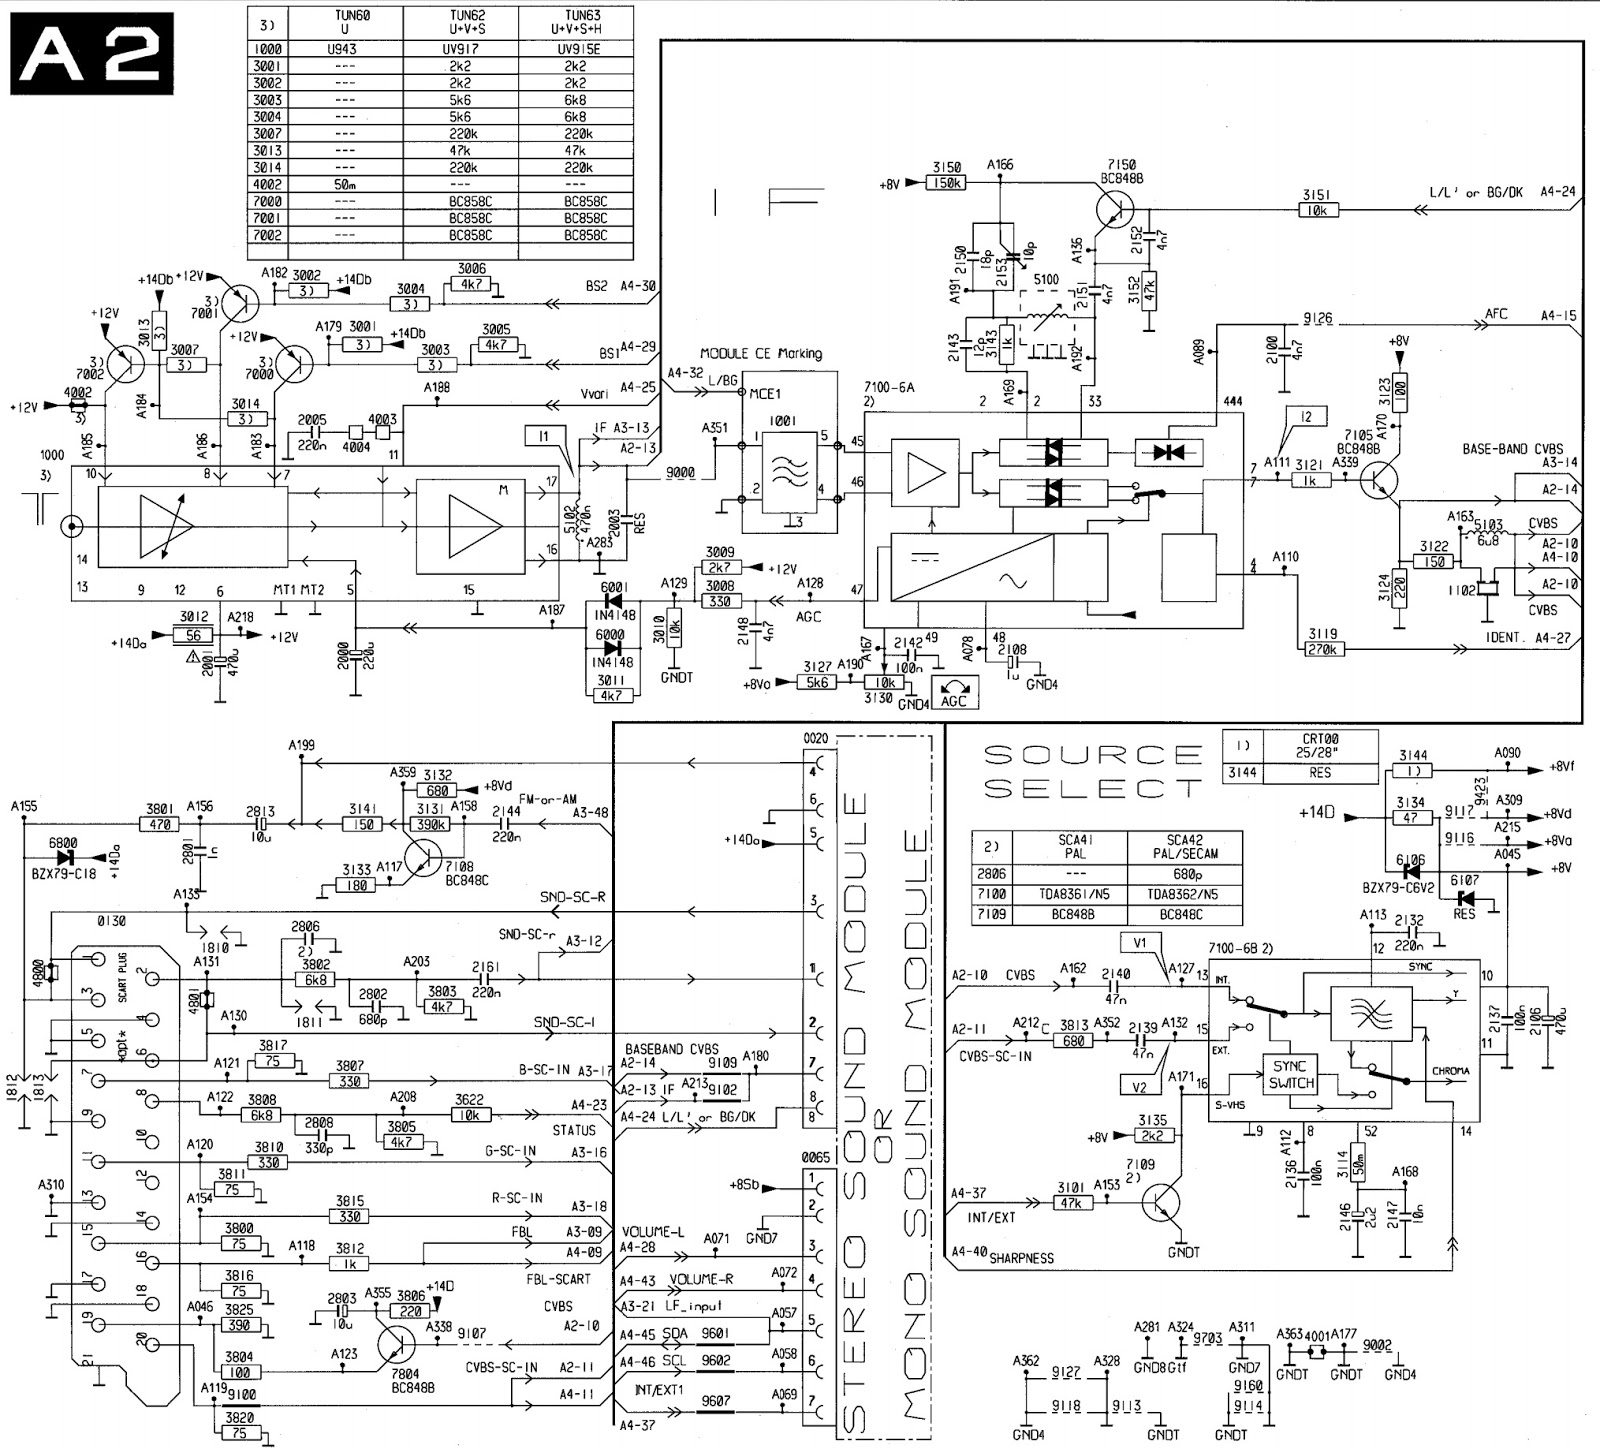 hight resolution of philips 286ns 05 chassis comet circuit diagram full schematic circuit diagramfull click on the schematic to magnify